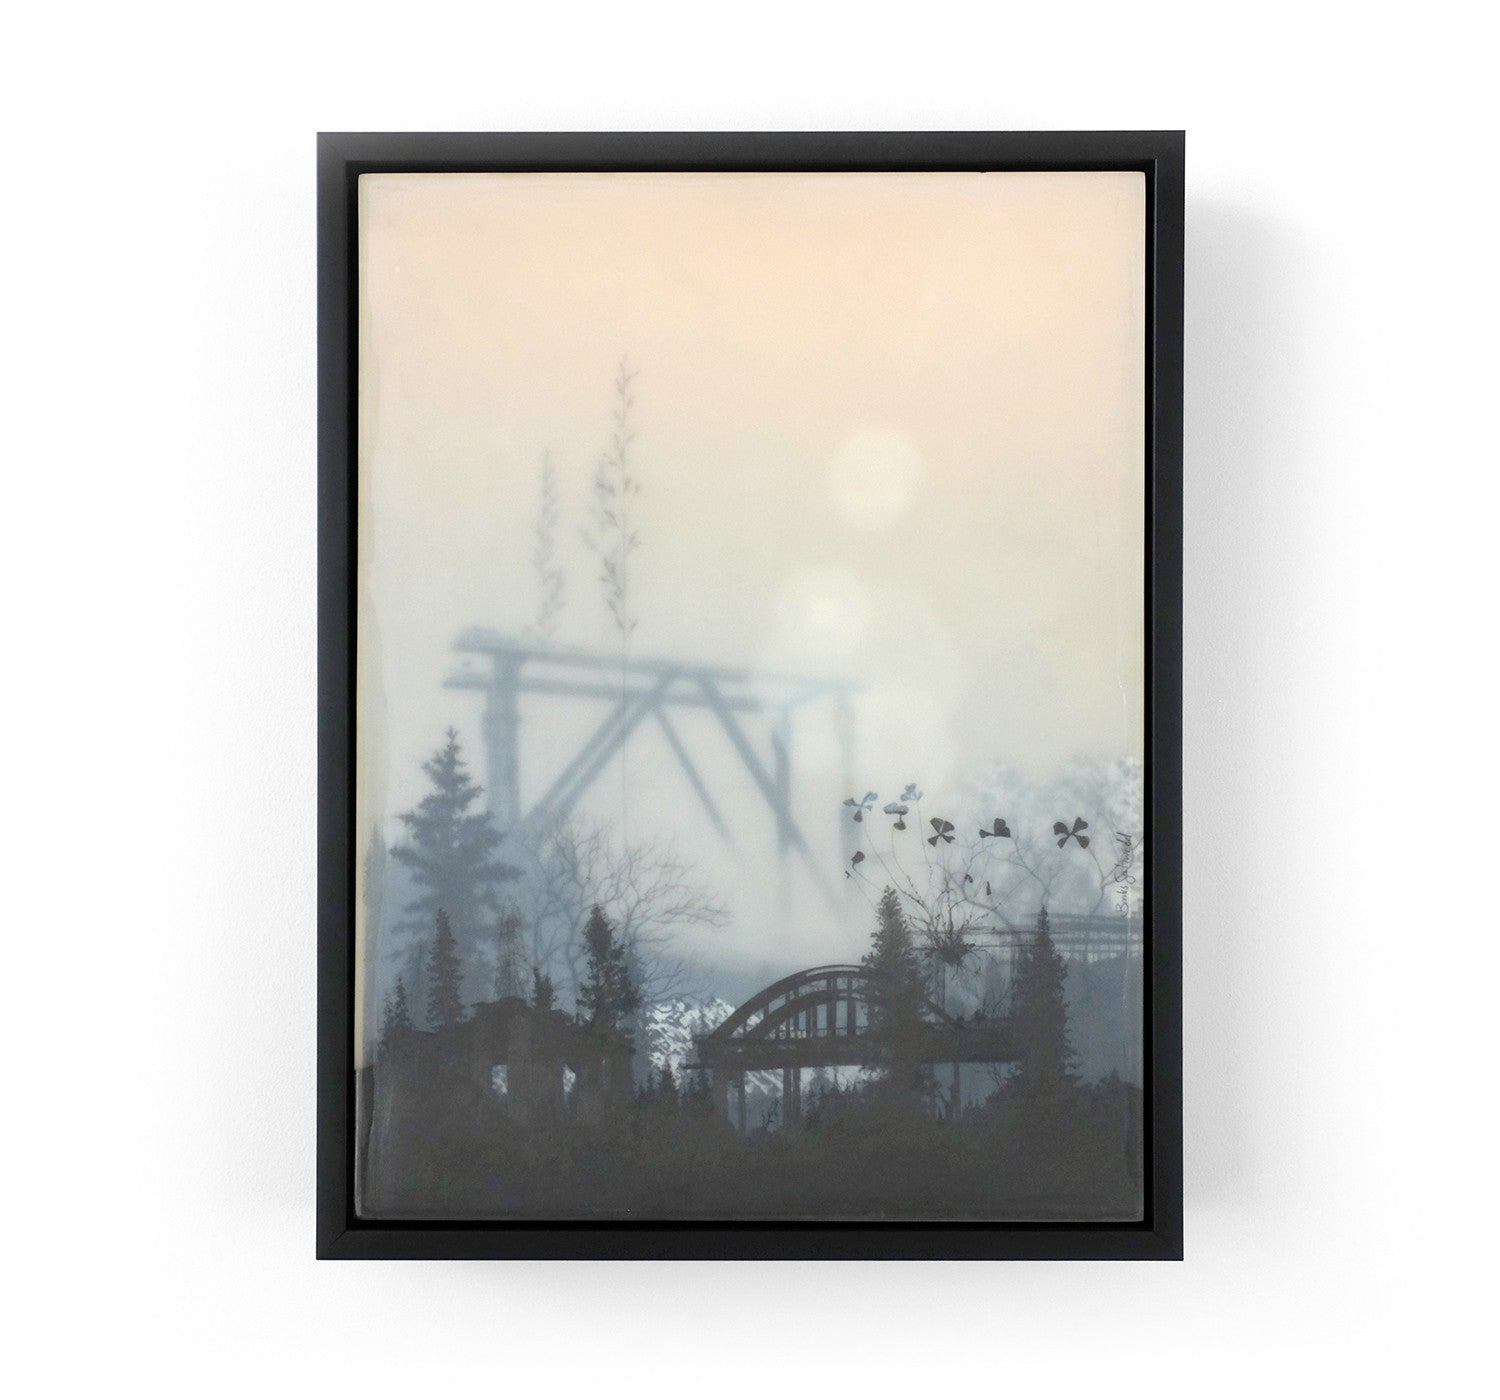 Brooks Salzwedel - Bridges and Weeds